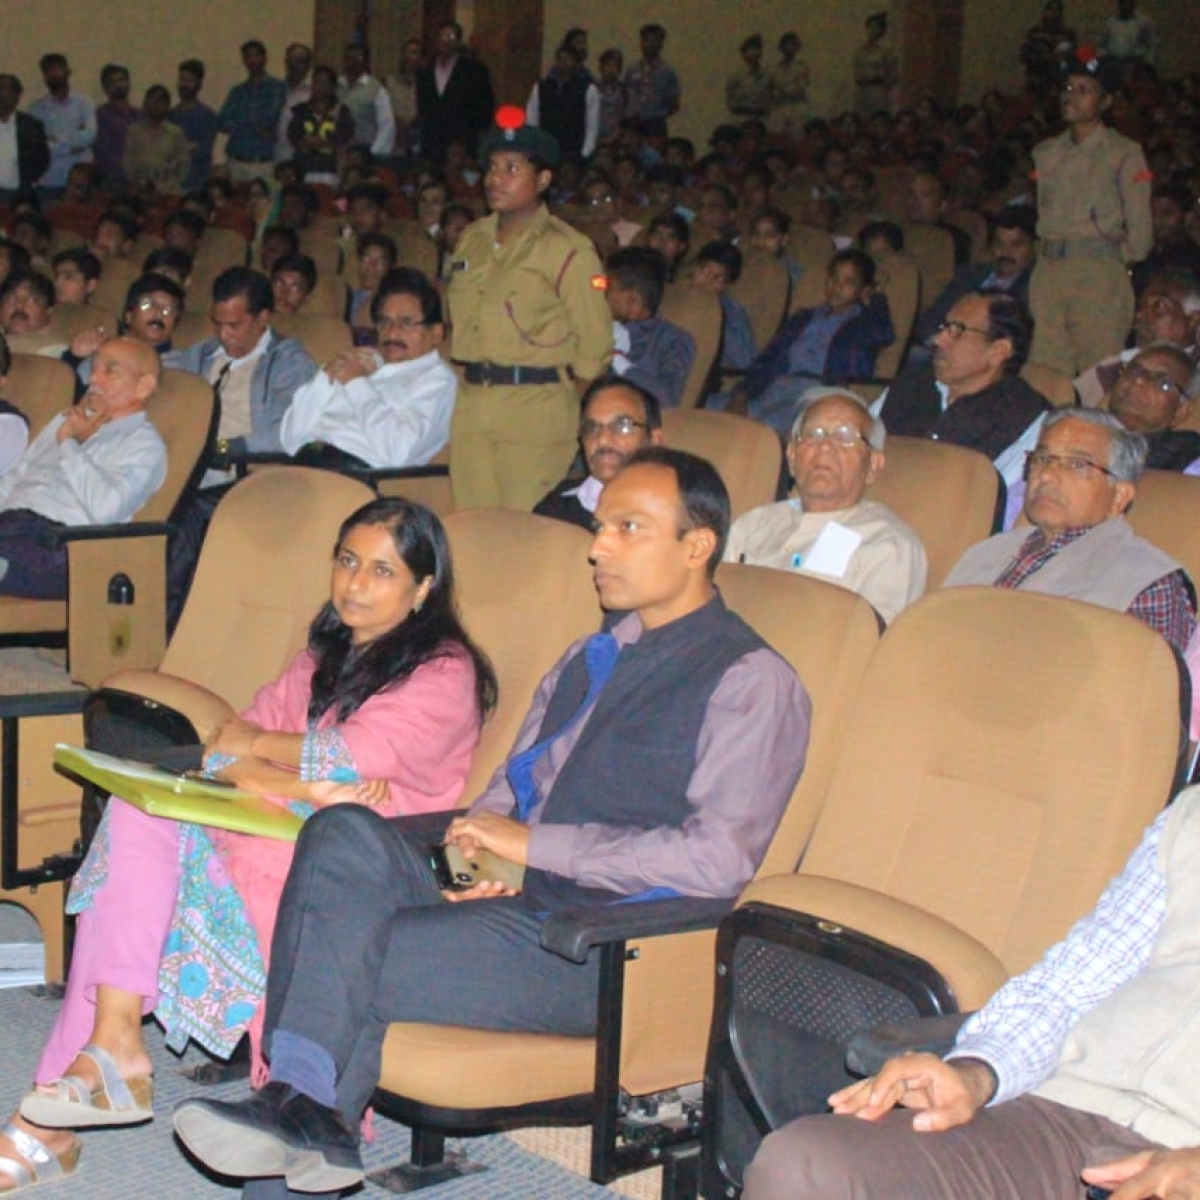 Residents & district administration reflect over clean, green and livable Bhopal